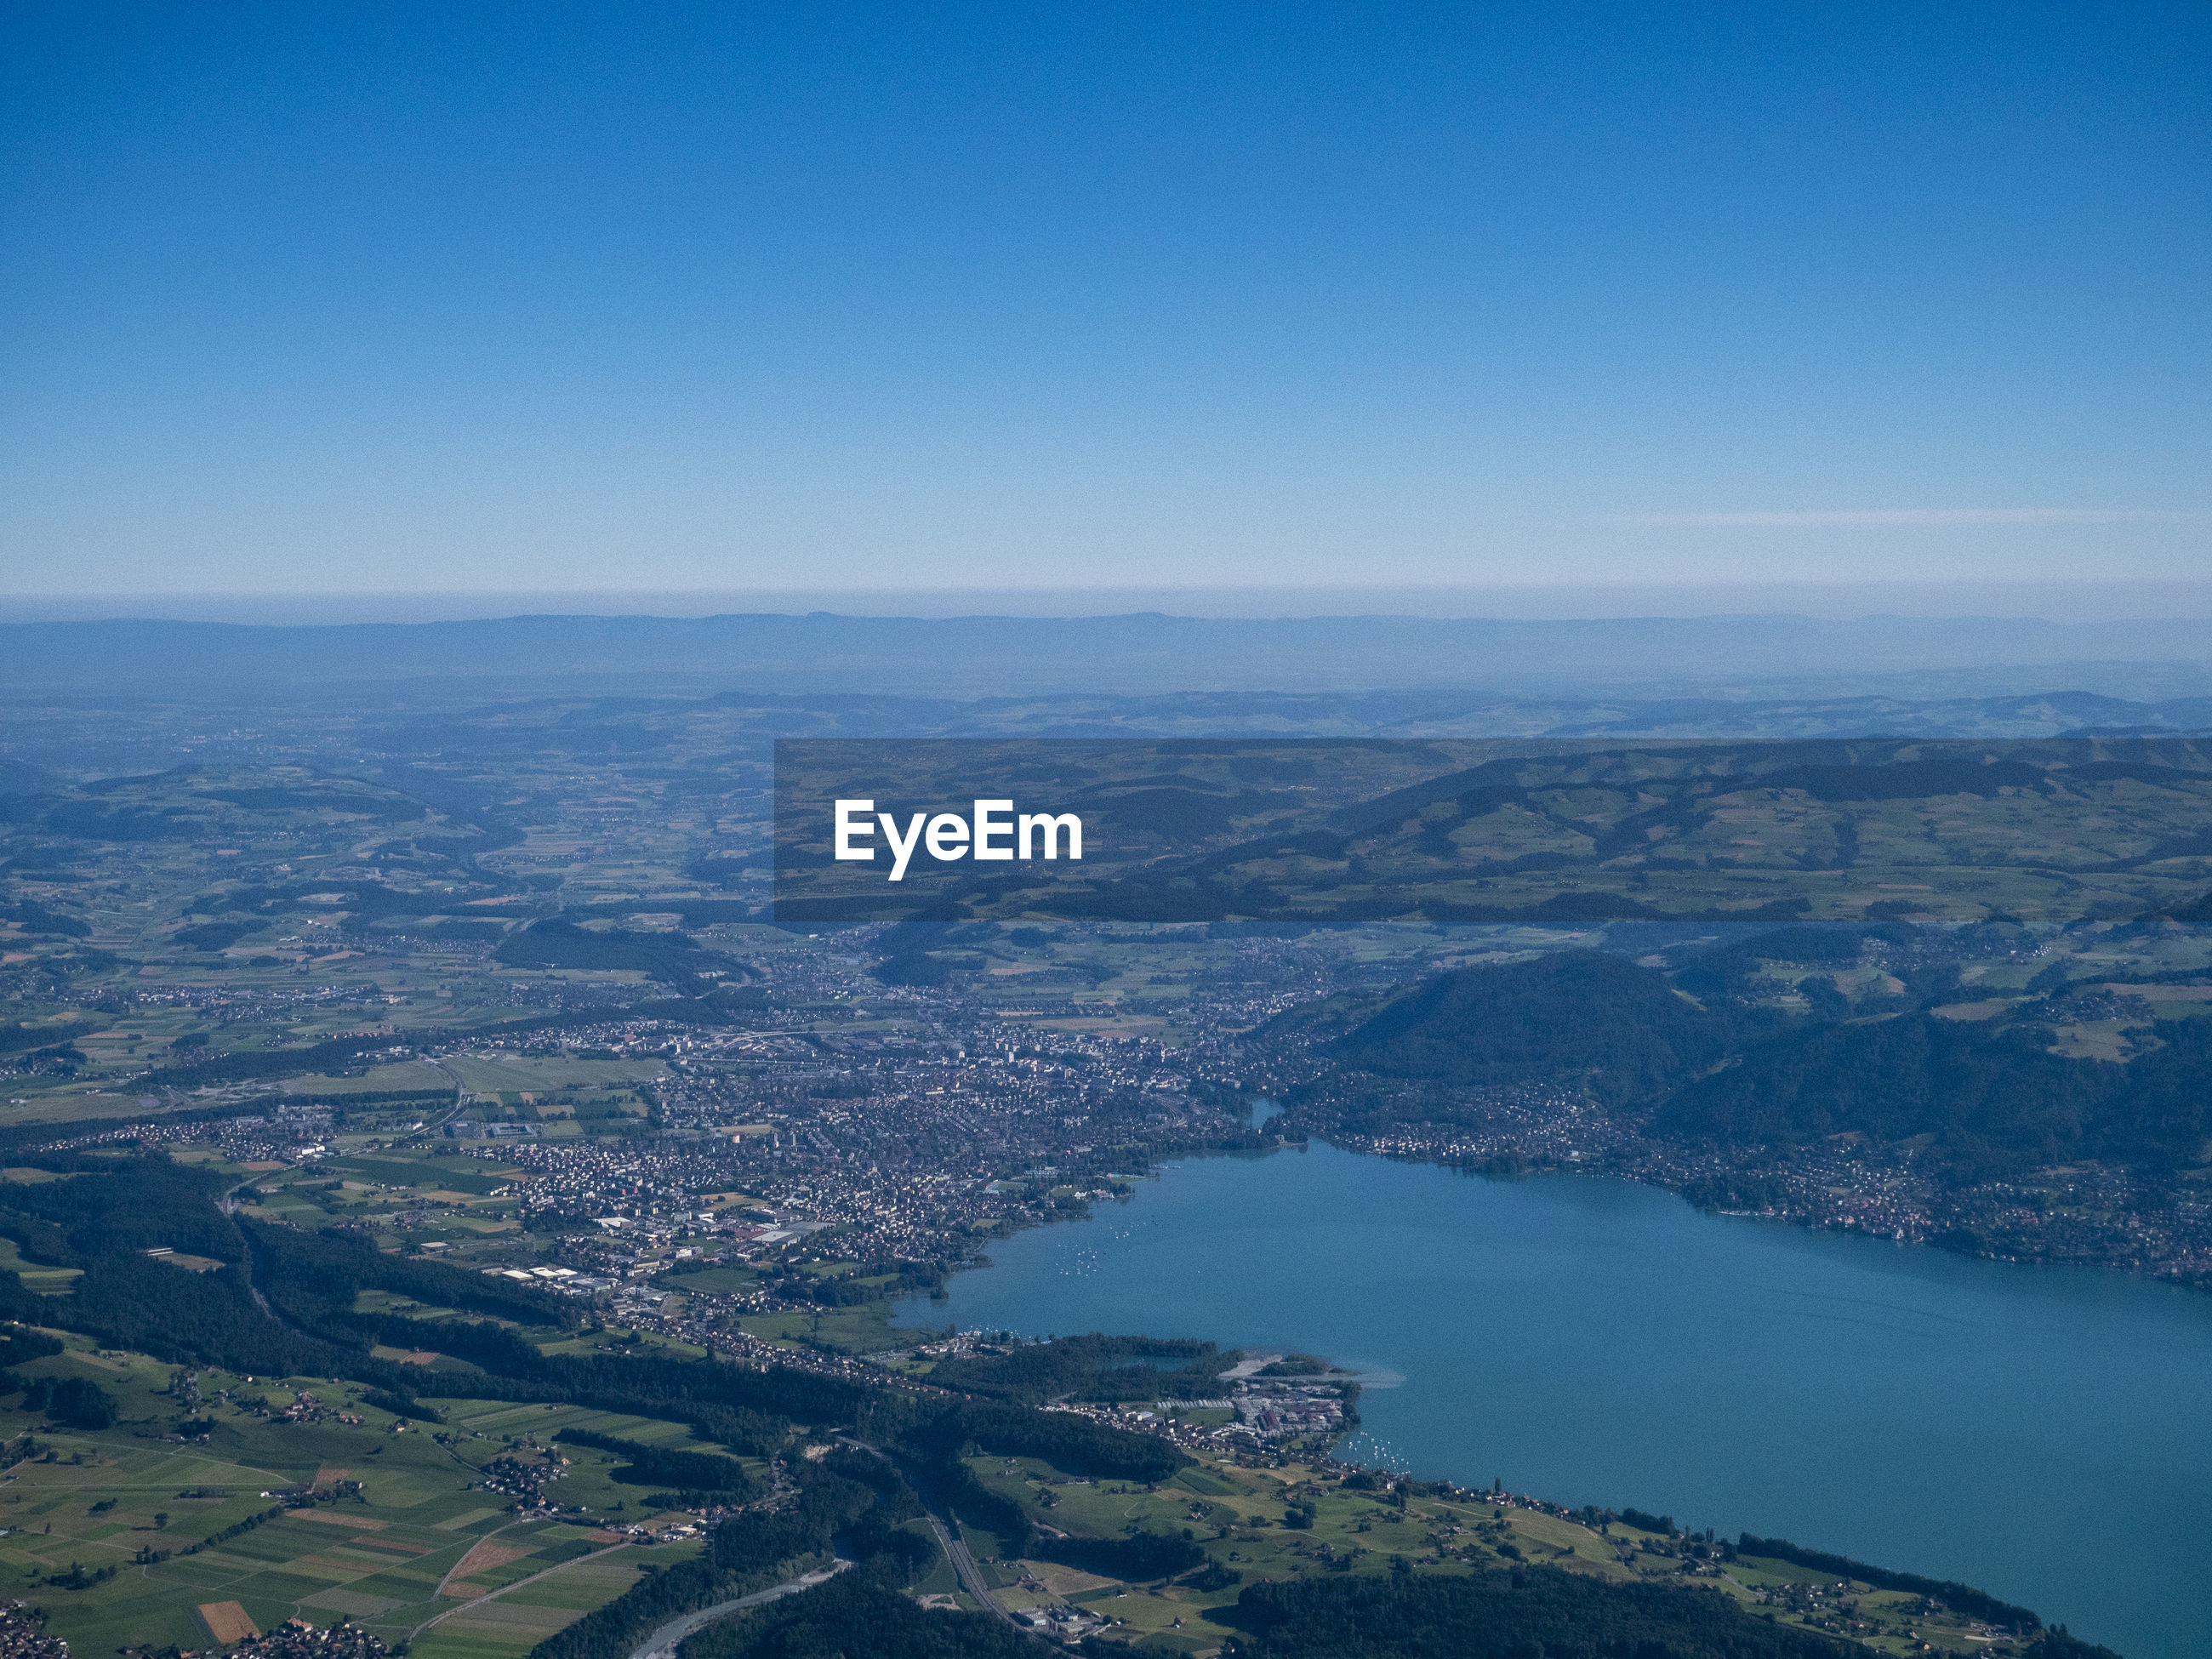 AERIAL VIEW OF SEA AND CITY AGAINST CLEAR SKY